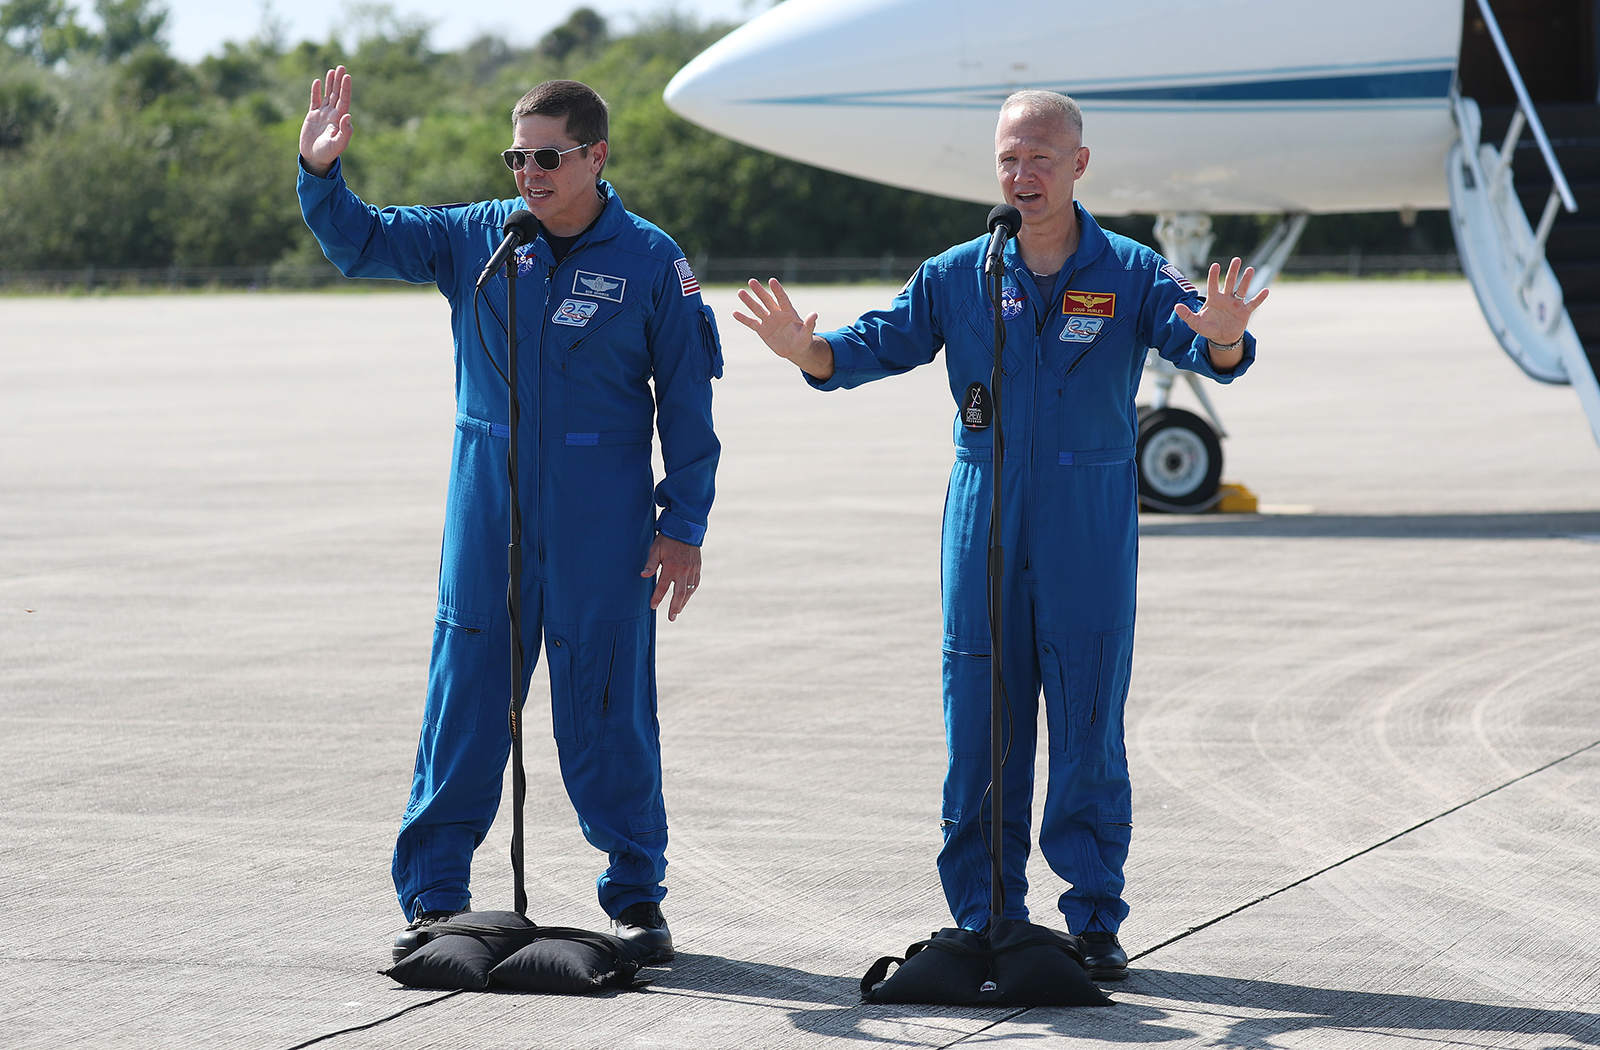 NASA astronauts Bob Behnken, left, and Doug Hurley speak to the media after arriving at the Kennedy Space Center on May 20, in Cape Canaveral, Florida.